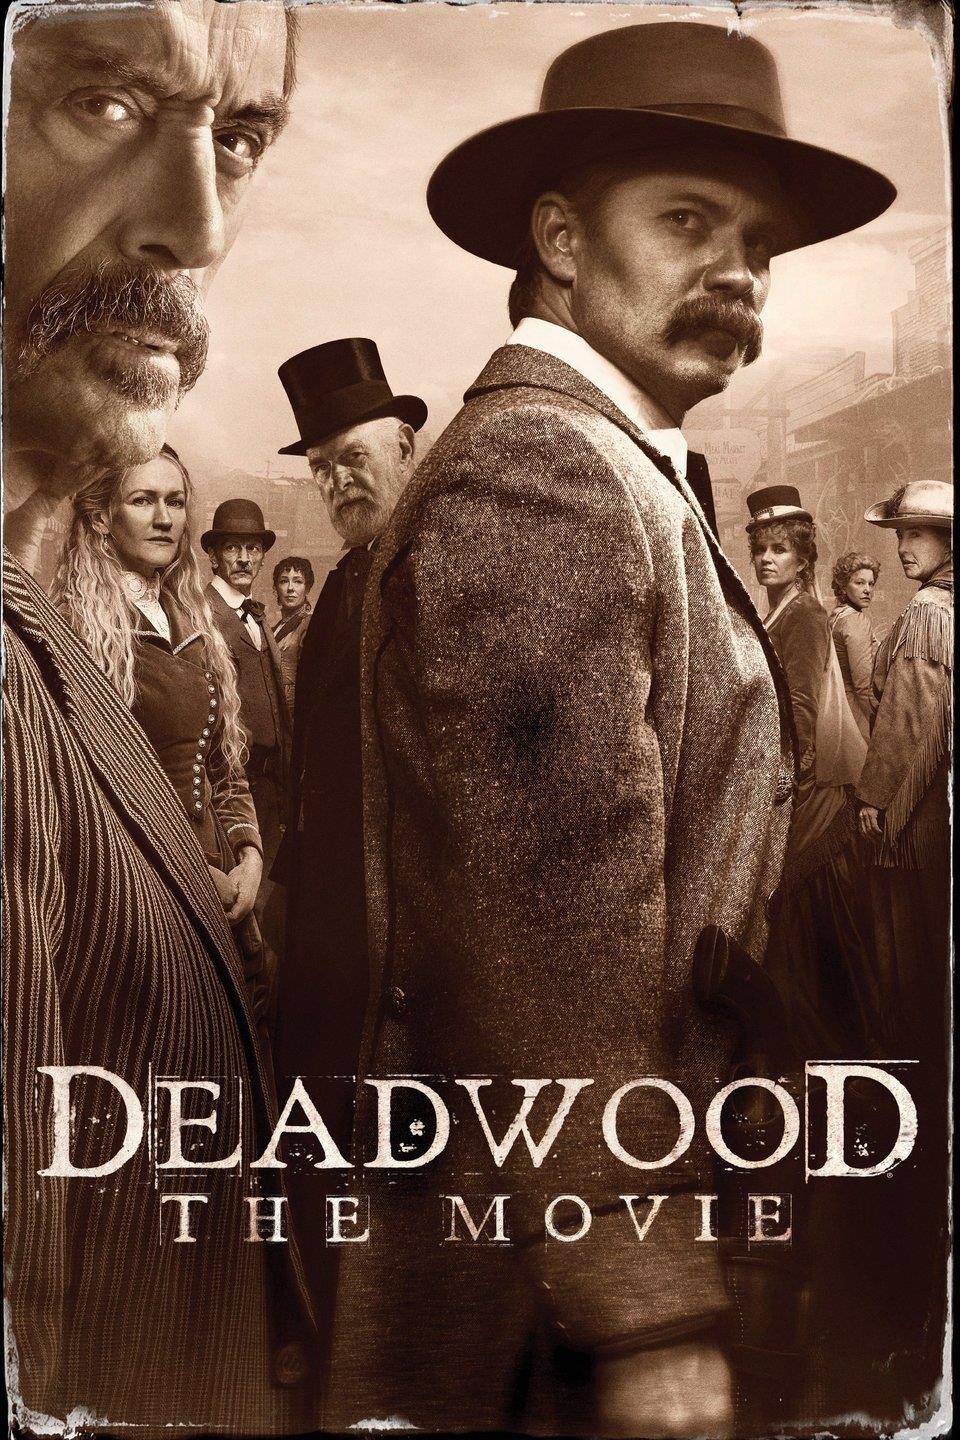 telecharger Deadwood The Movie 2019 FRENCH 1080p WEB-DL x264-STVFRV torrent9